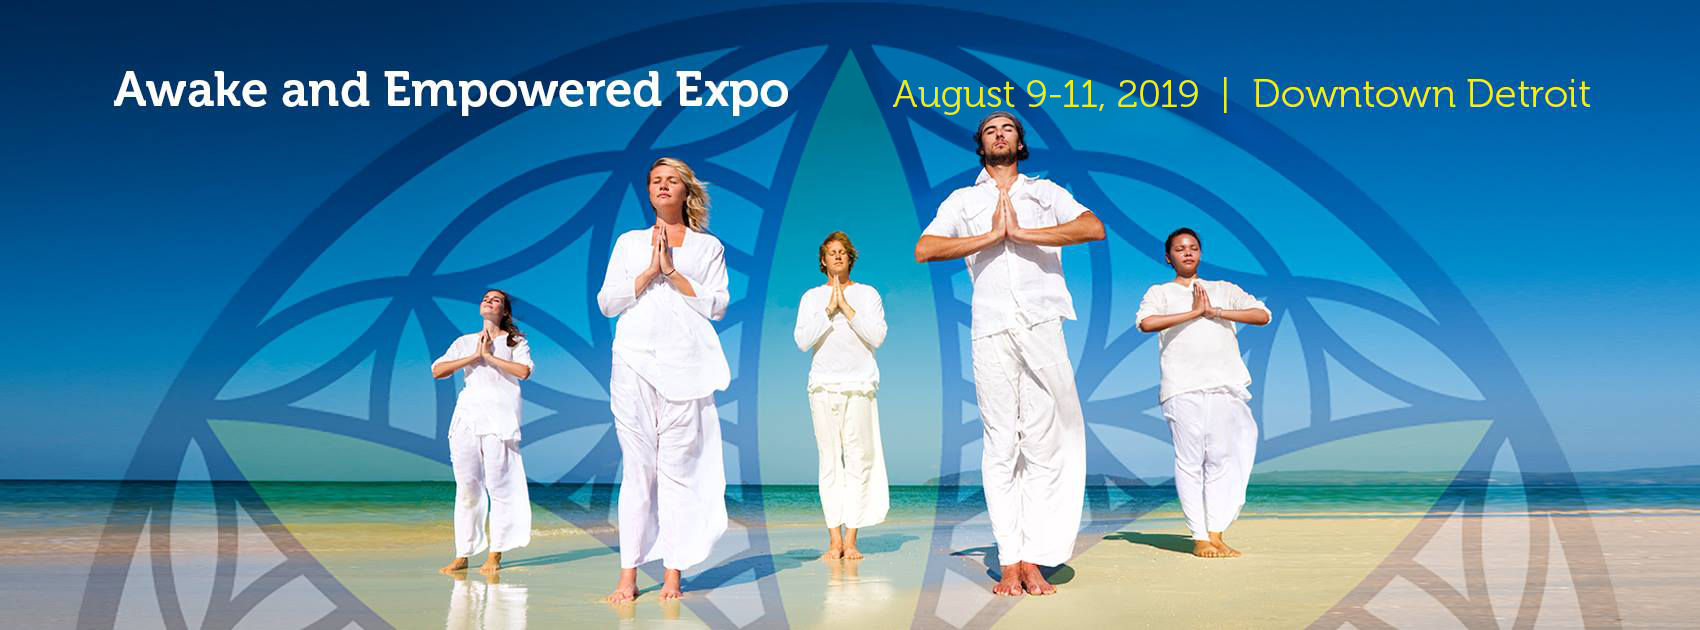 link to Awake and Empowered Expo